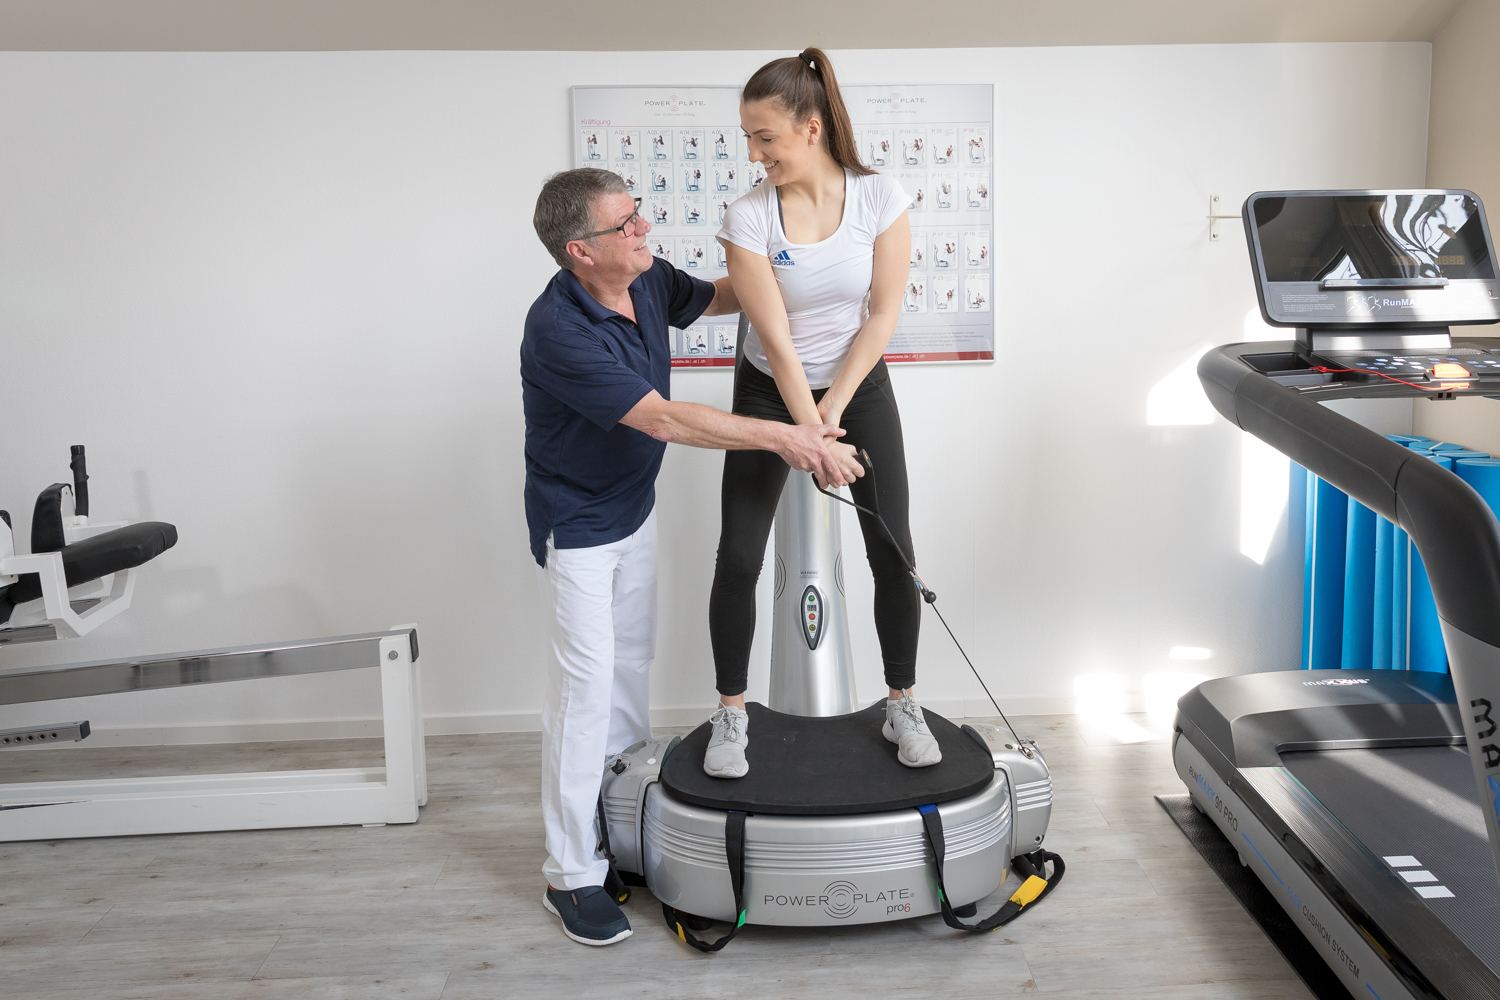 Power Plate in der Praxis Stracke